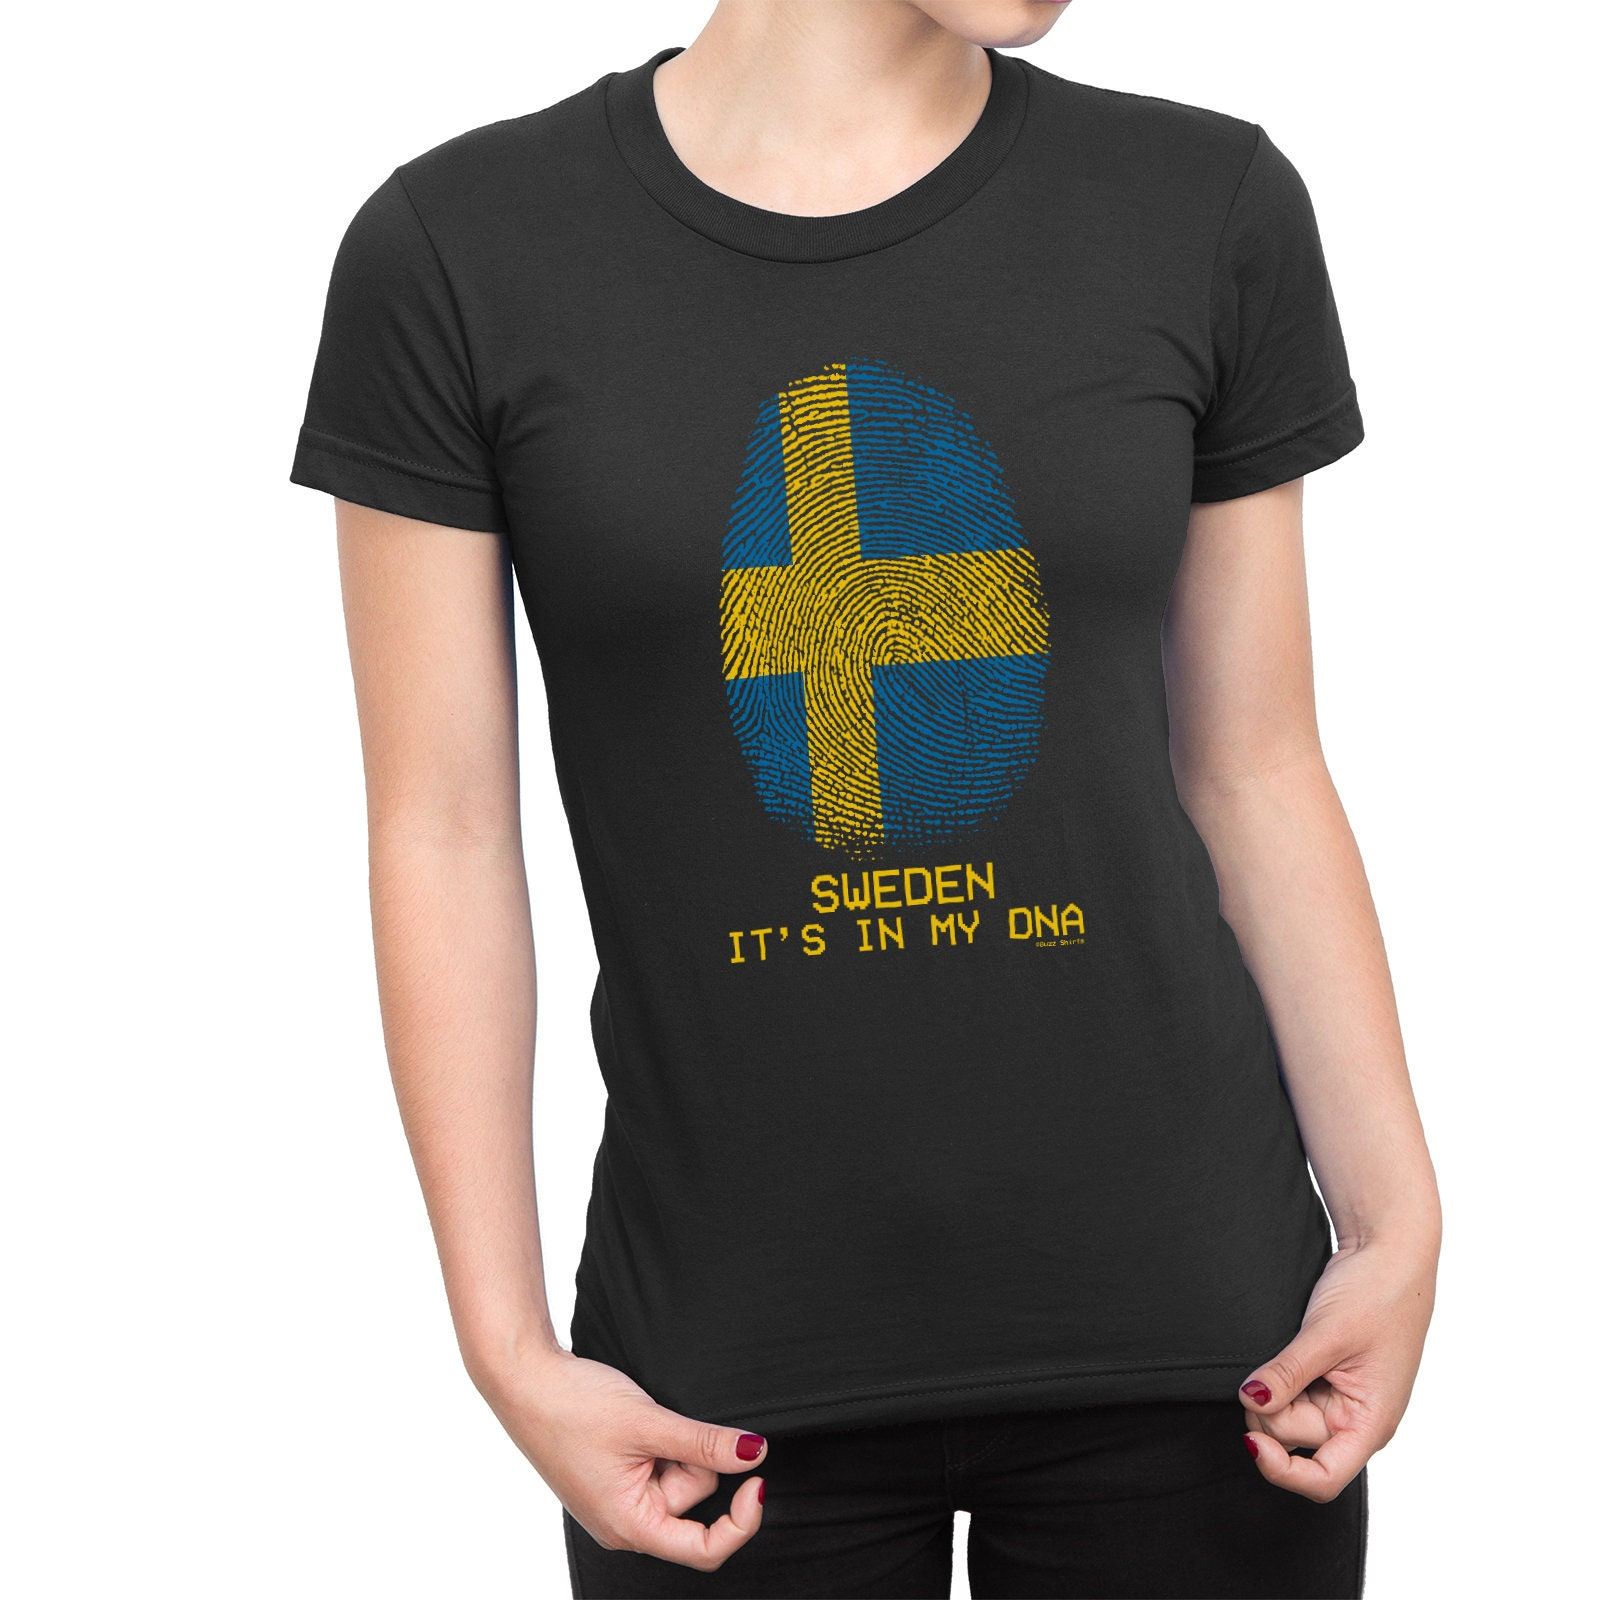 317d1225a290 LADIES T-Shirt SWEDEN Sverige Its in my DNA Womens Football